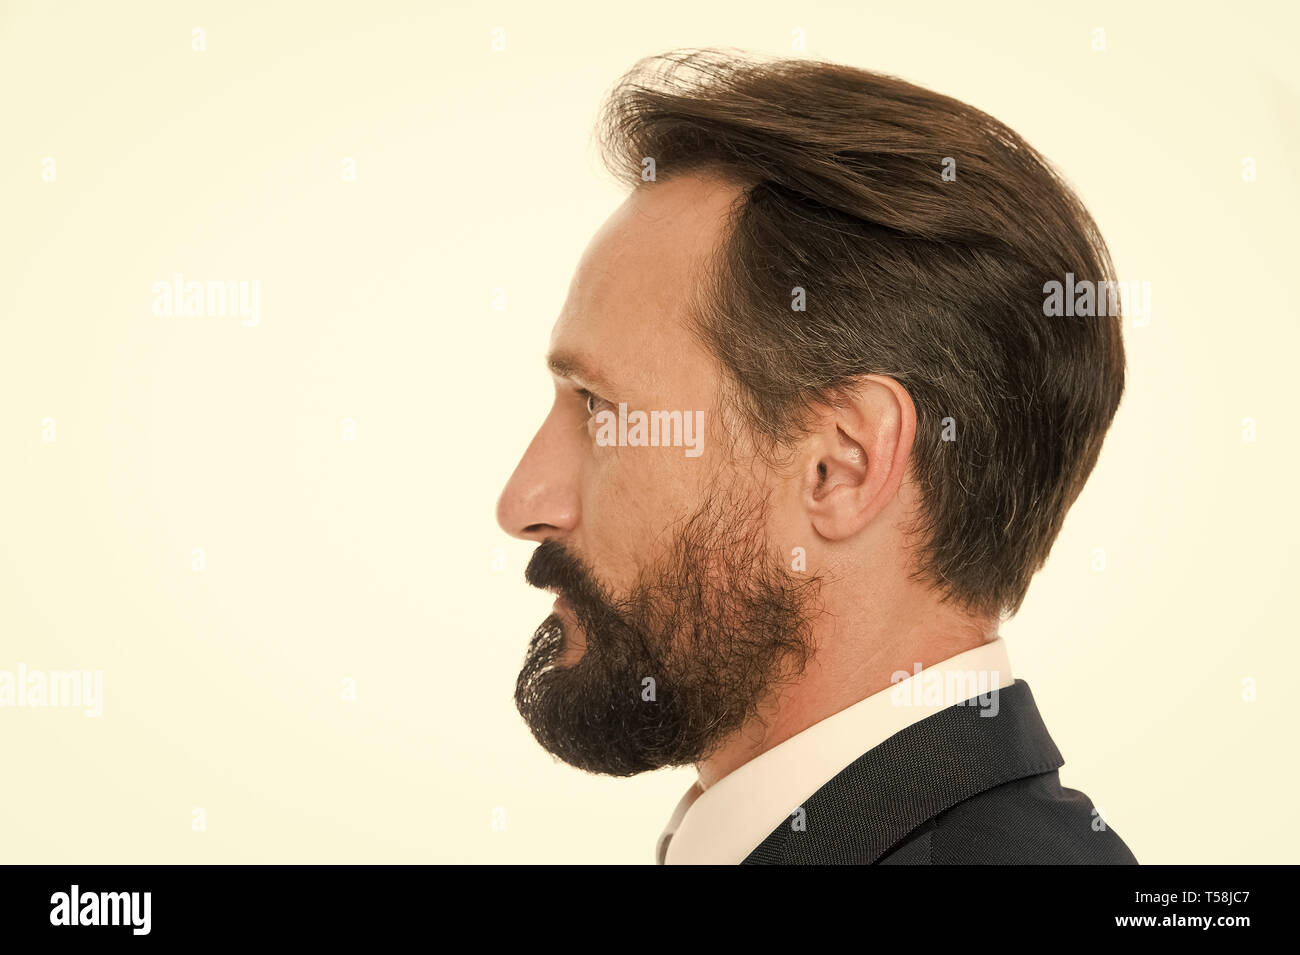 Perfect Style Business Man Well Groomed Mature Guy Side View White Background Business People Hairstyle Businessman Hair And Groomed Beard Beard Makes Your Appearance More Stylish And Modern Stock Photo Alamy